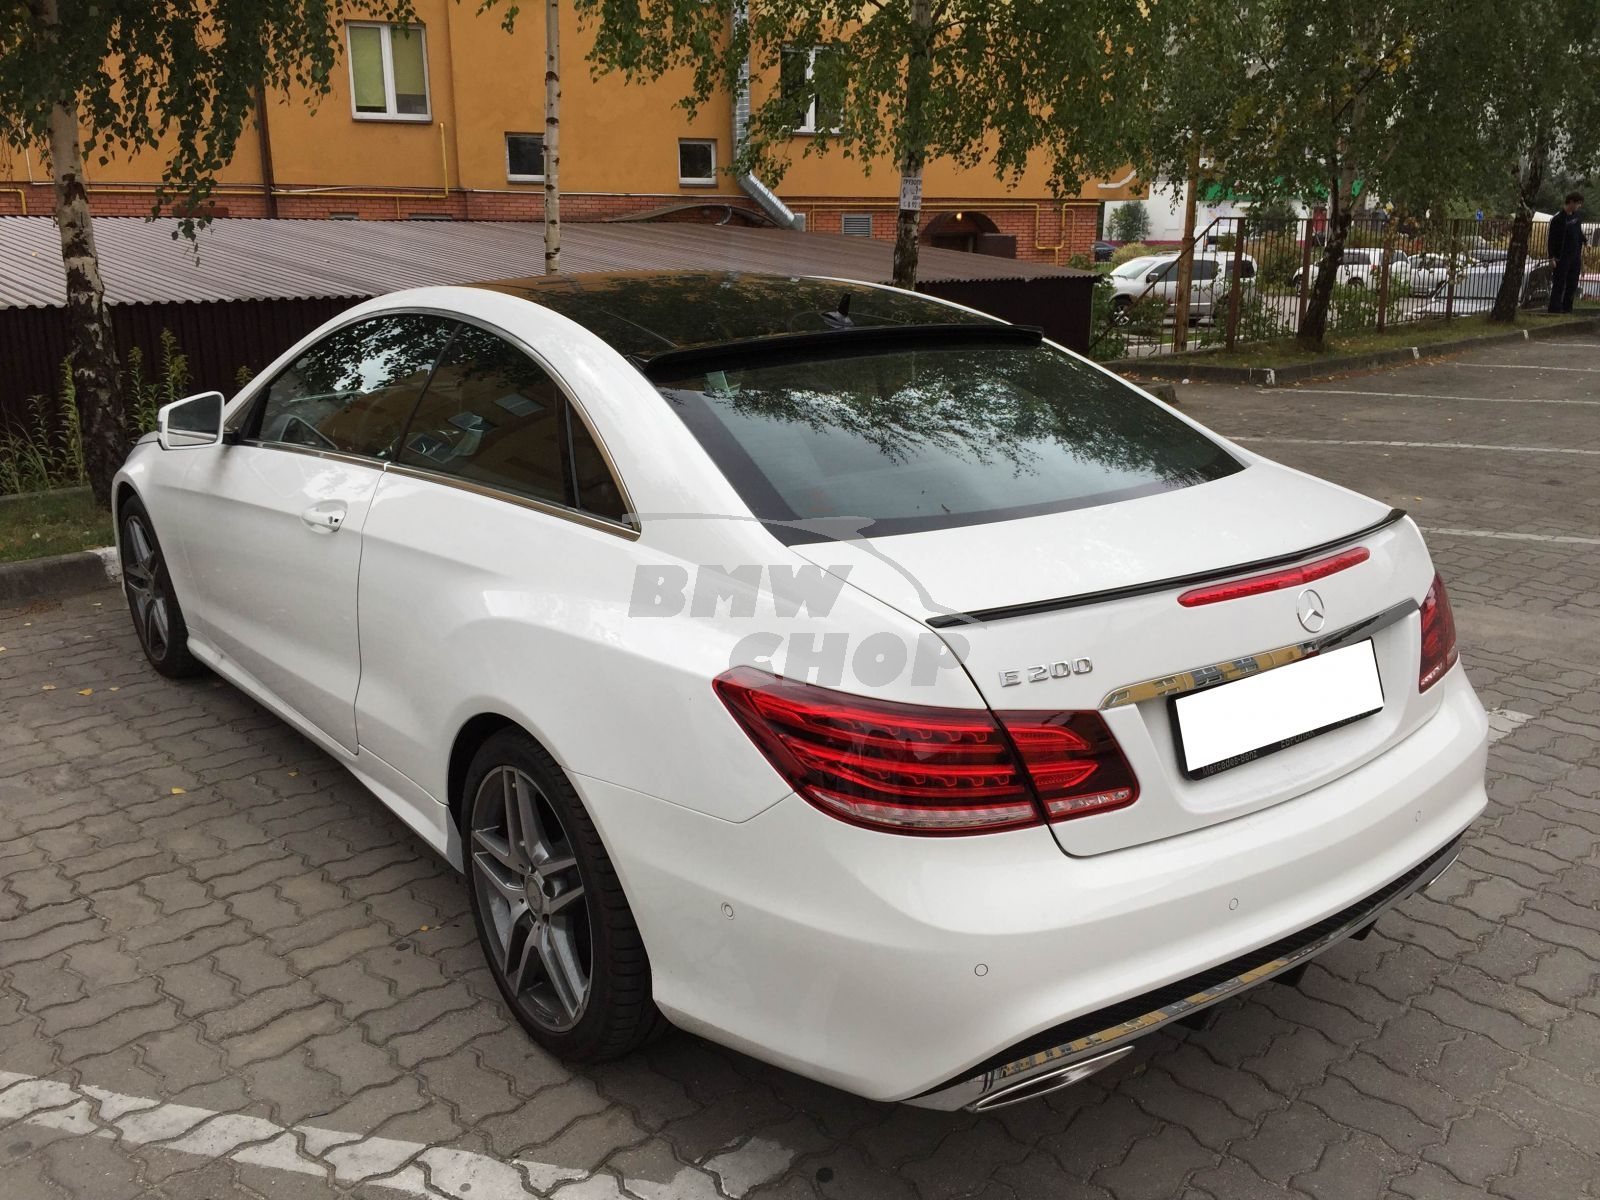 Painted mercedes benz c207 e class 2dr coupe rear window for What are the different classes of mercedes benz cars